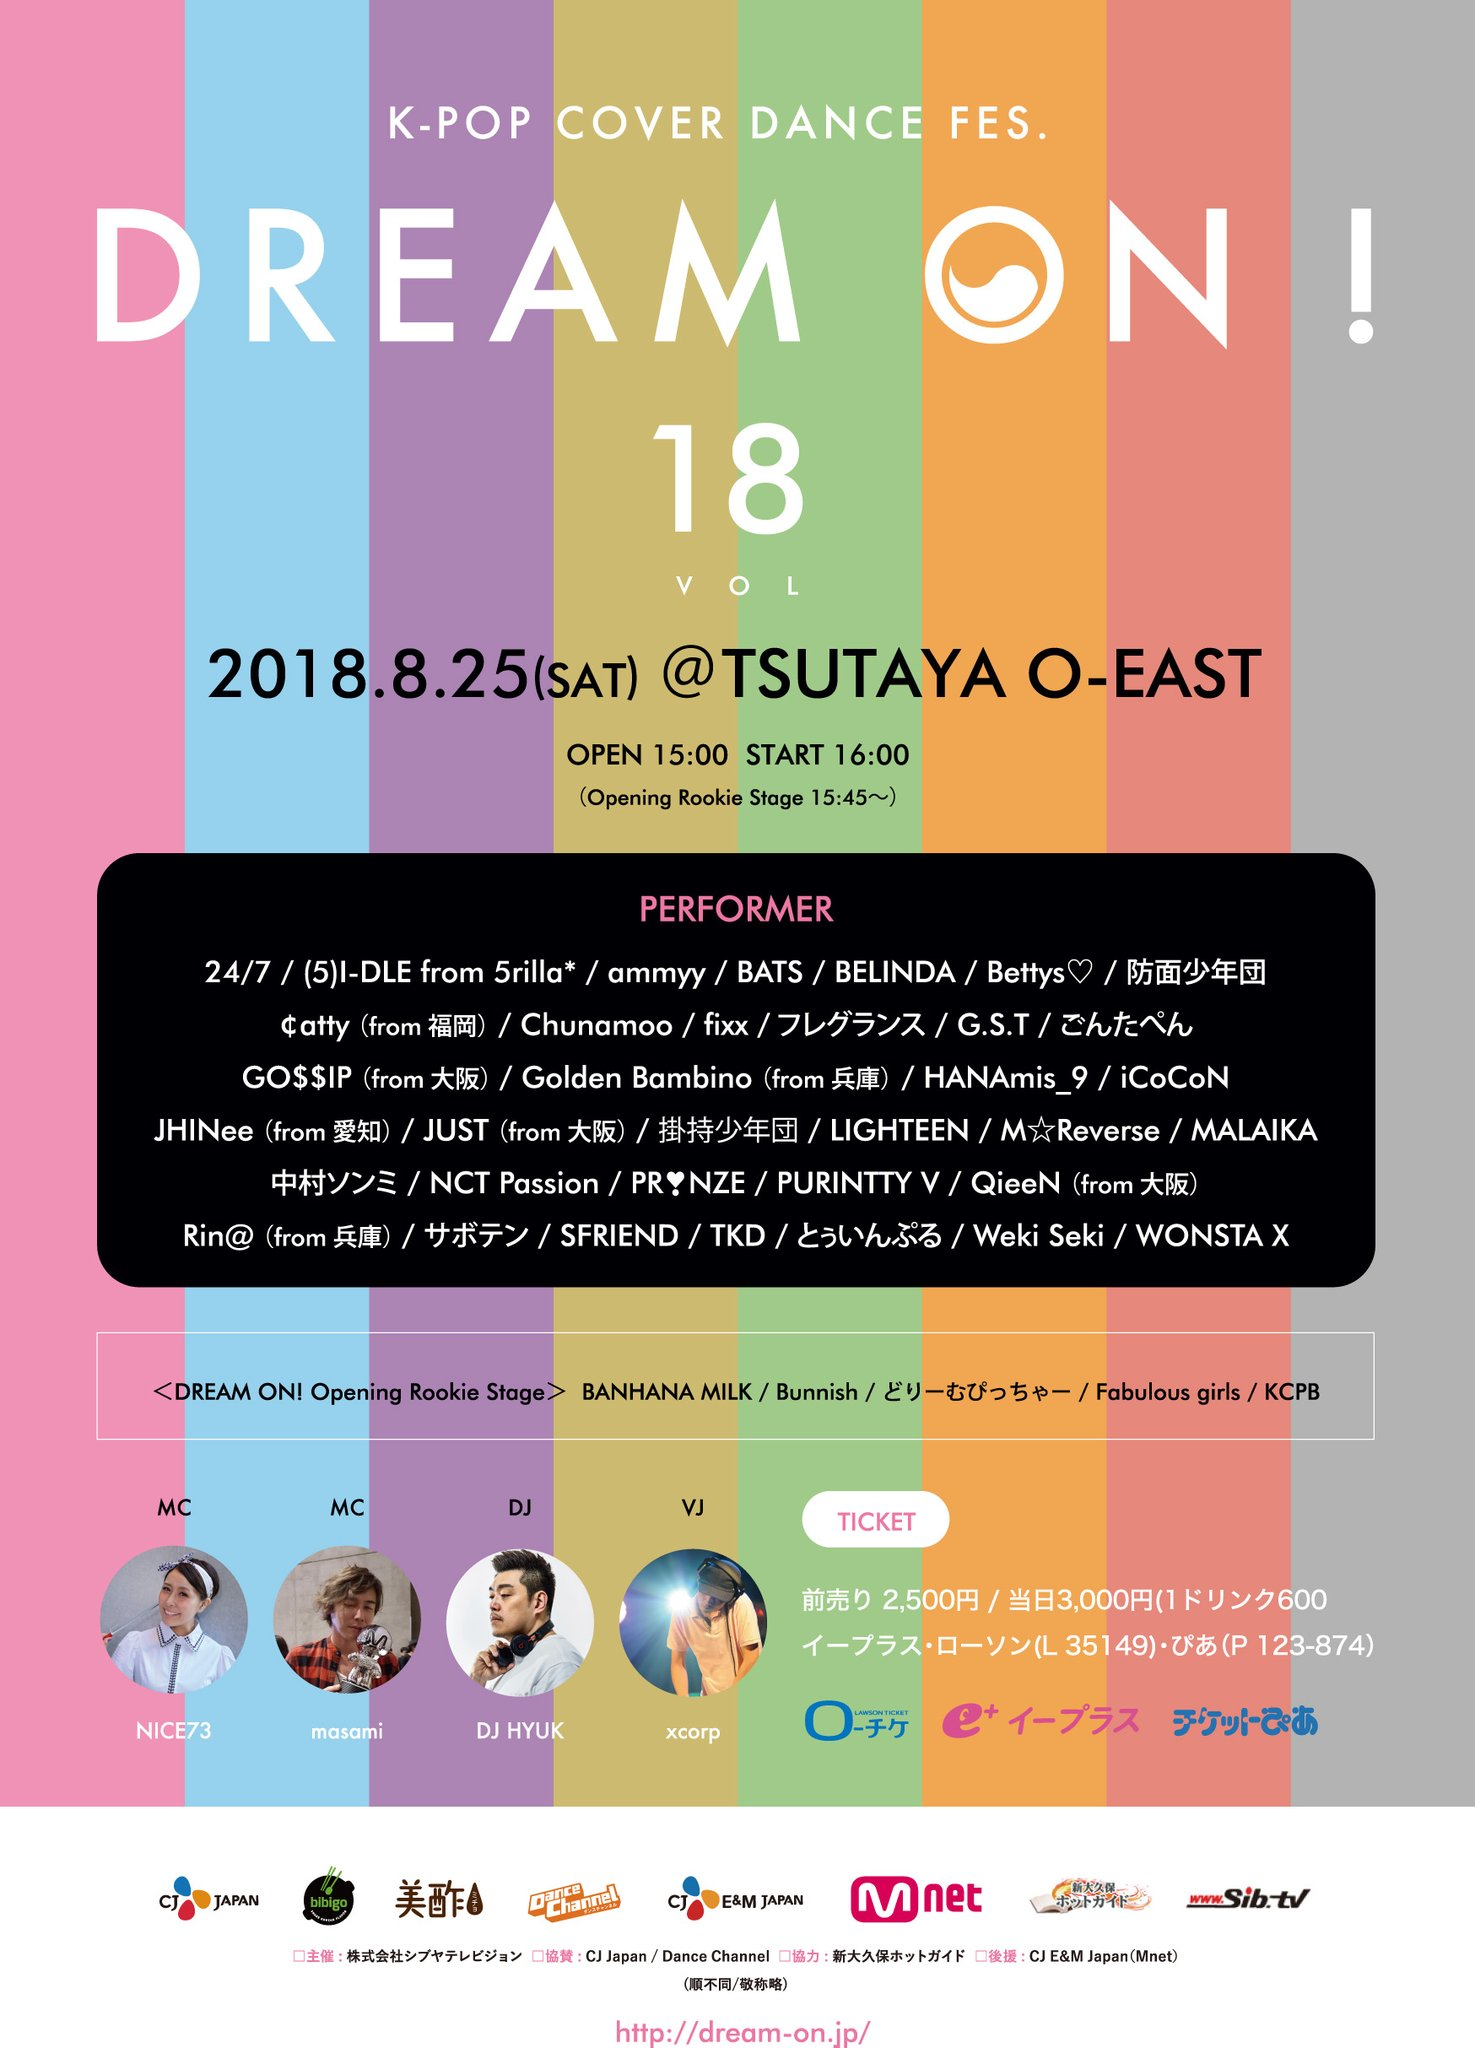 8/25(土) K-POP COVER DANCE FES. DREAM ON! Vol.18